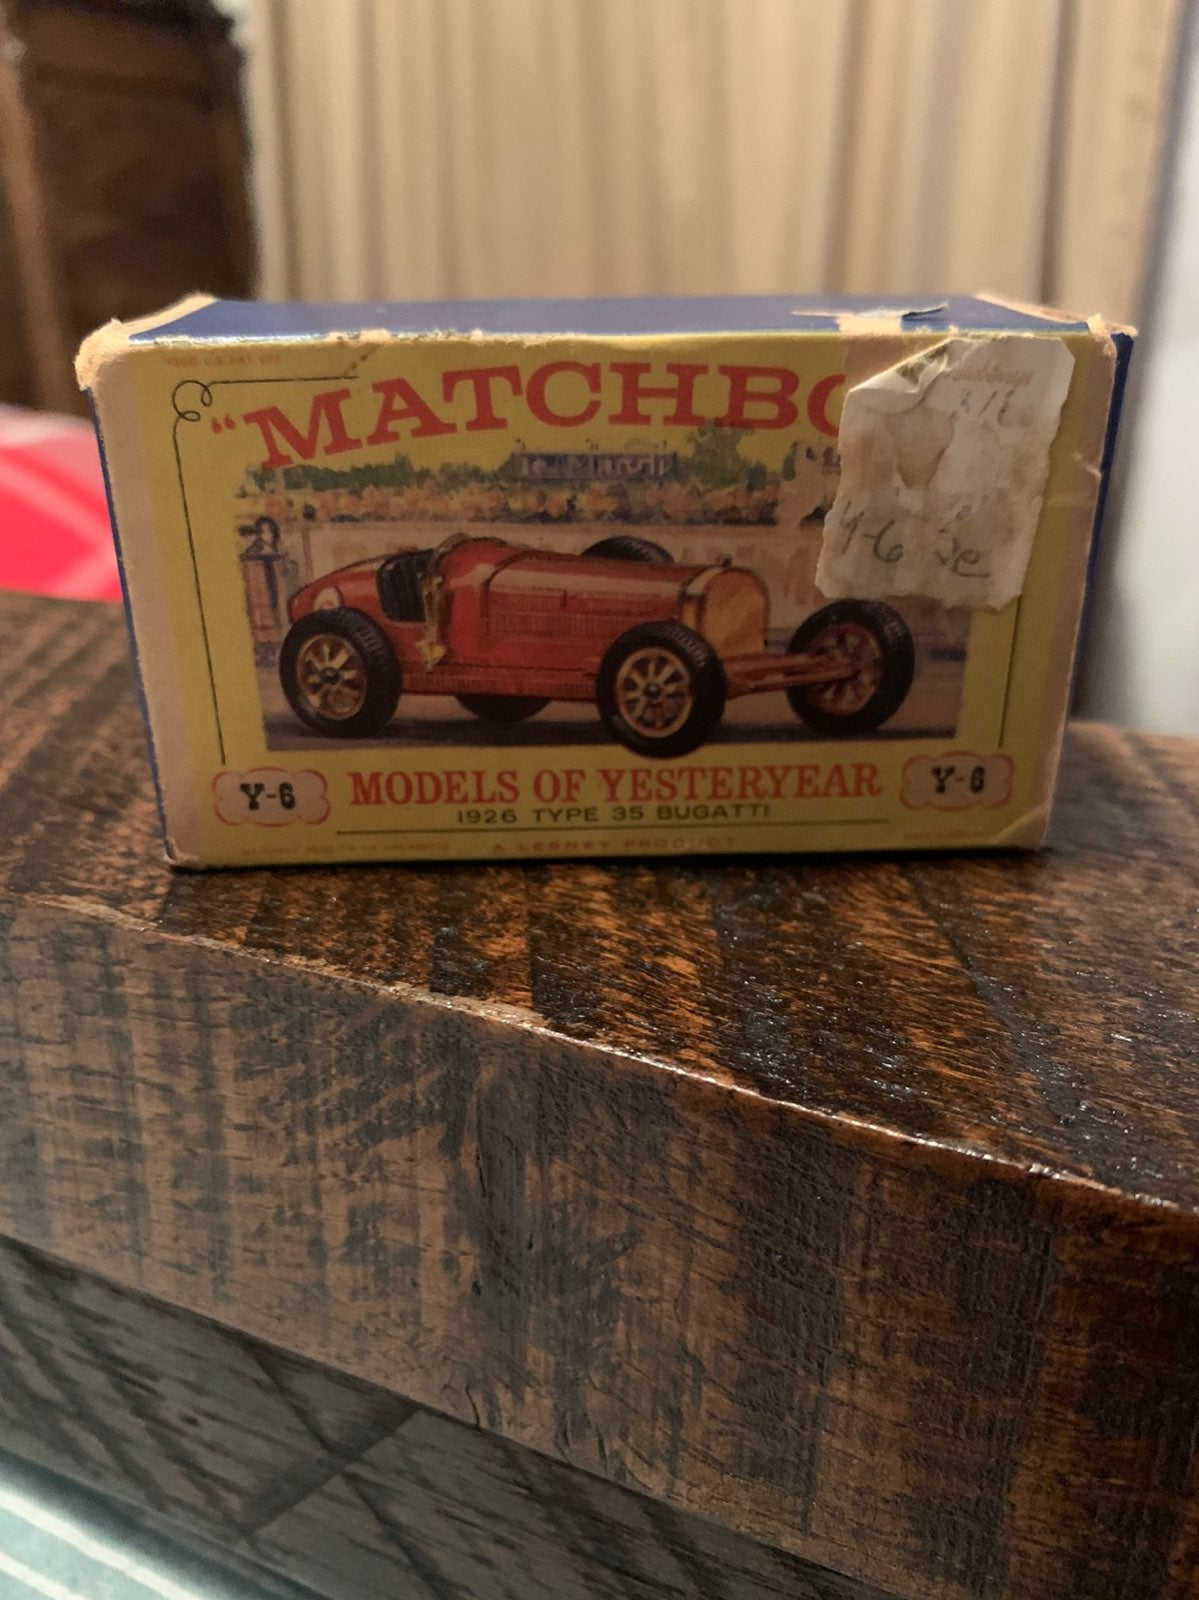 1961 MATCHBOX MODELS OF YESTERYEAR just